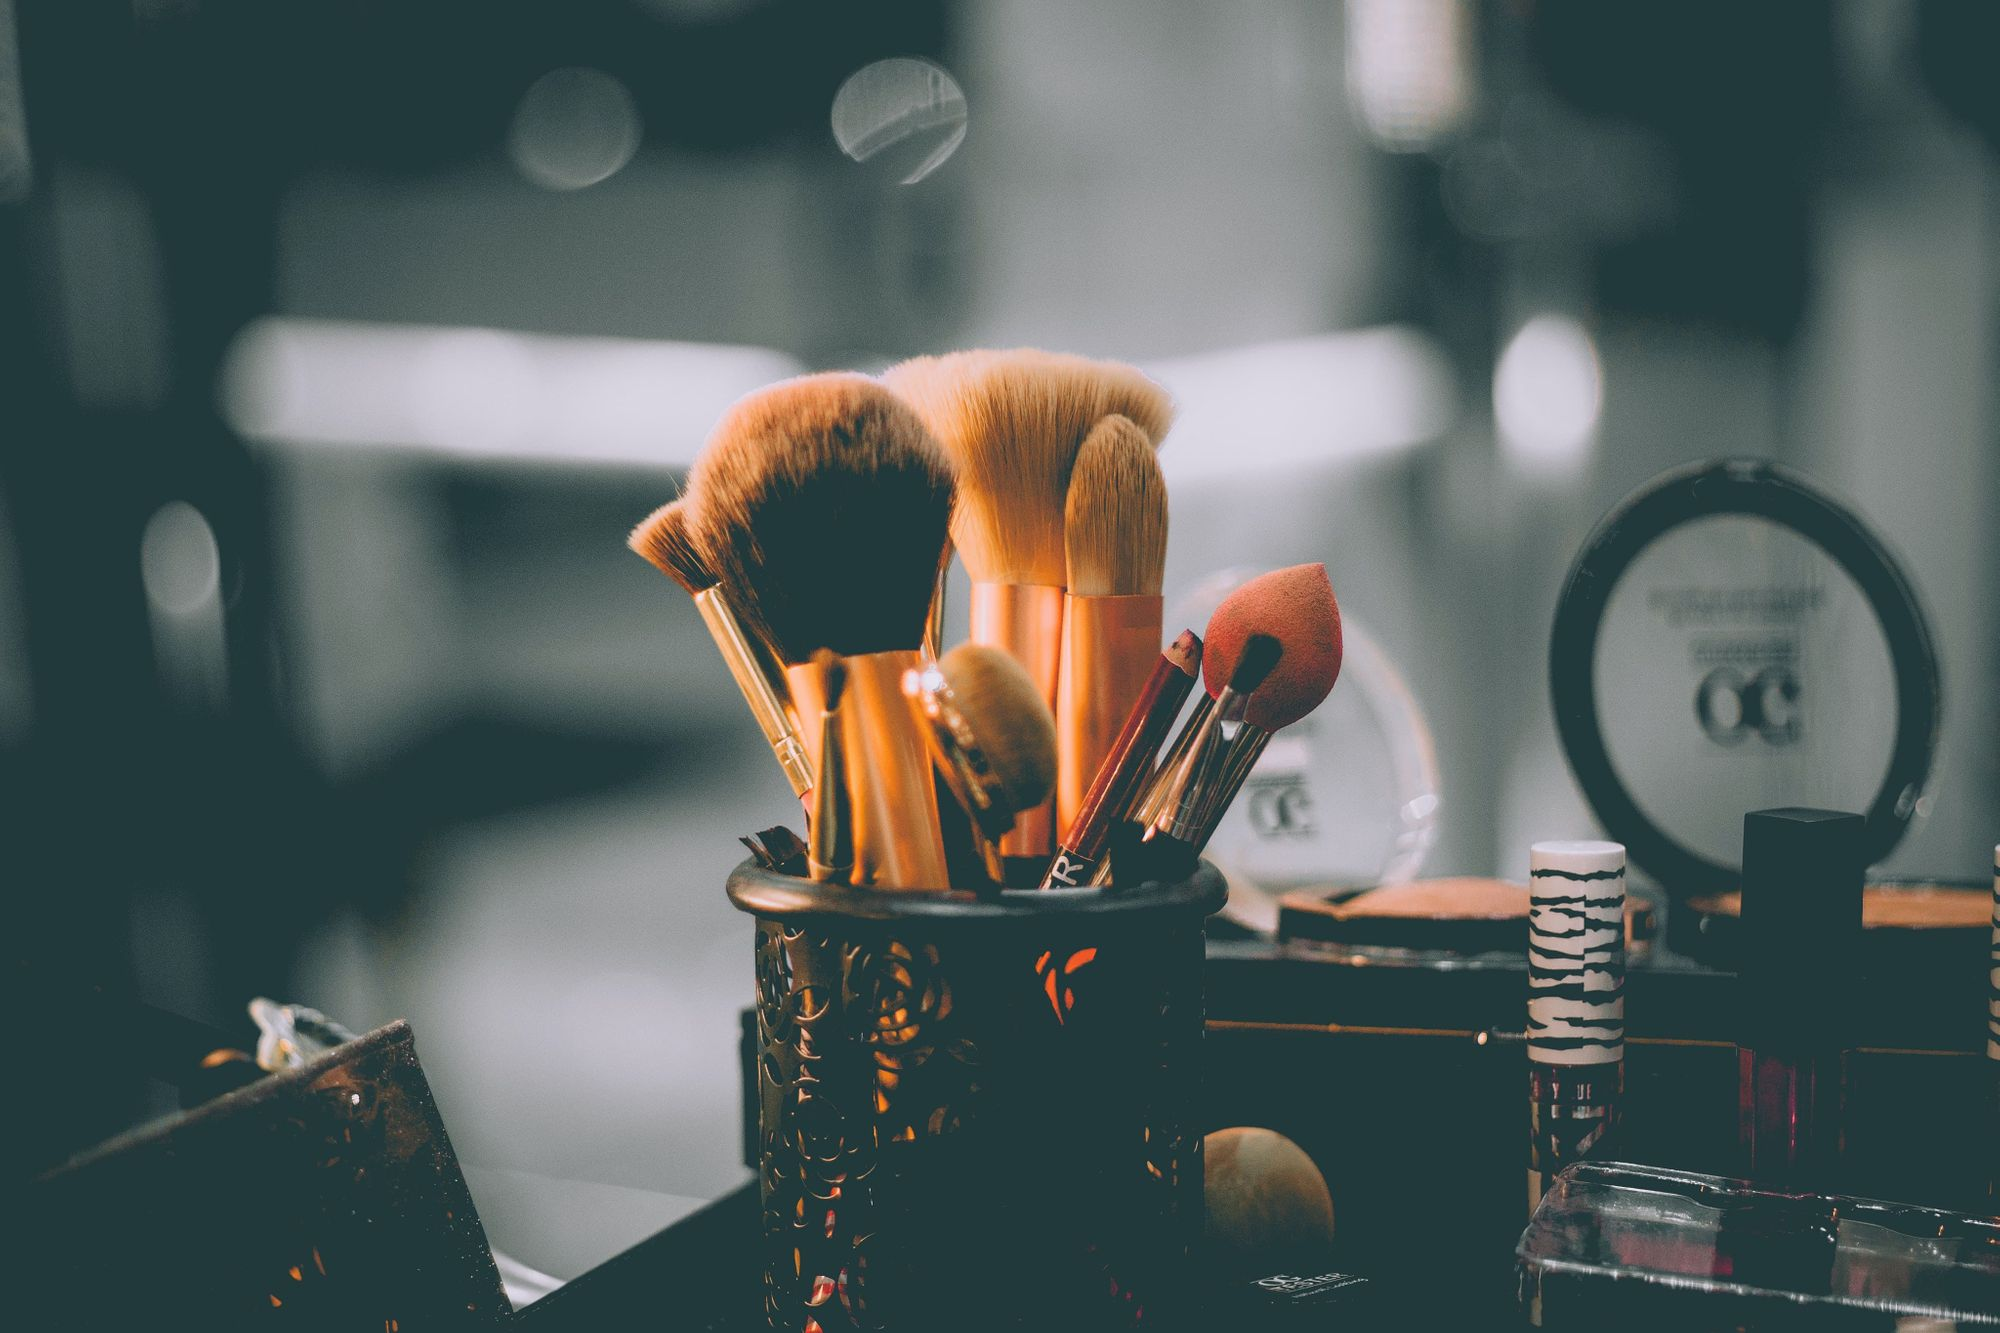 Mise en scene and hair and makeup